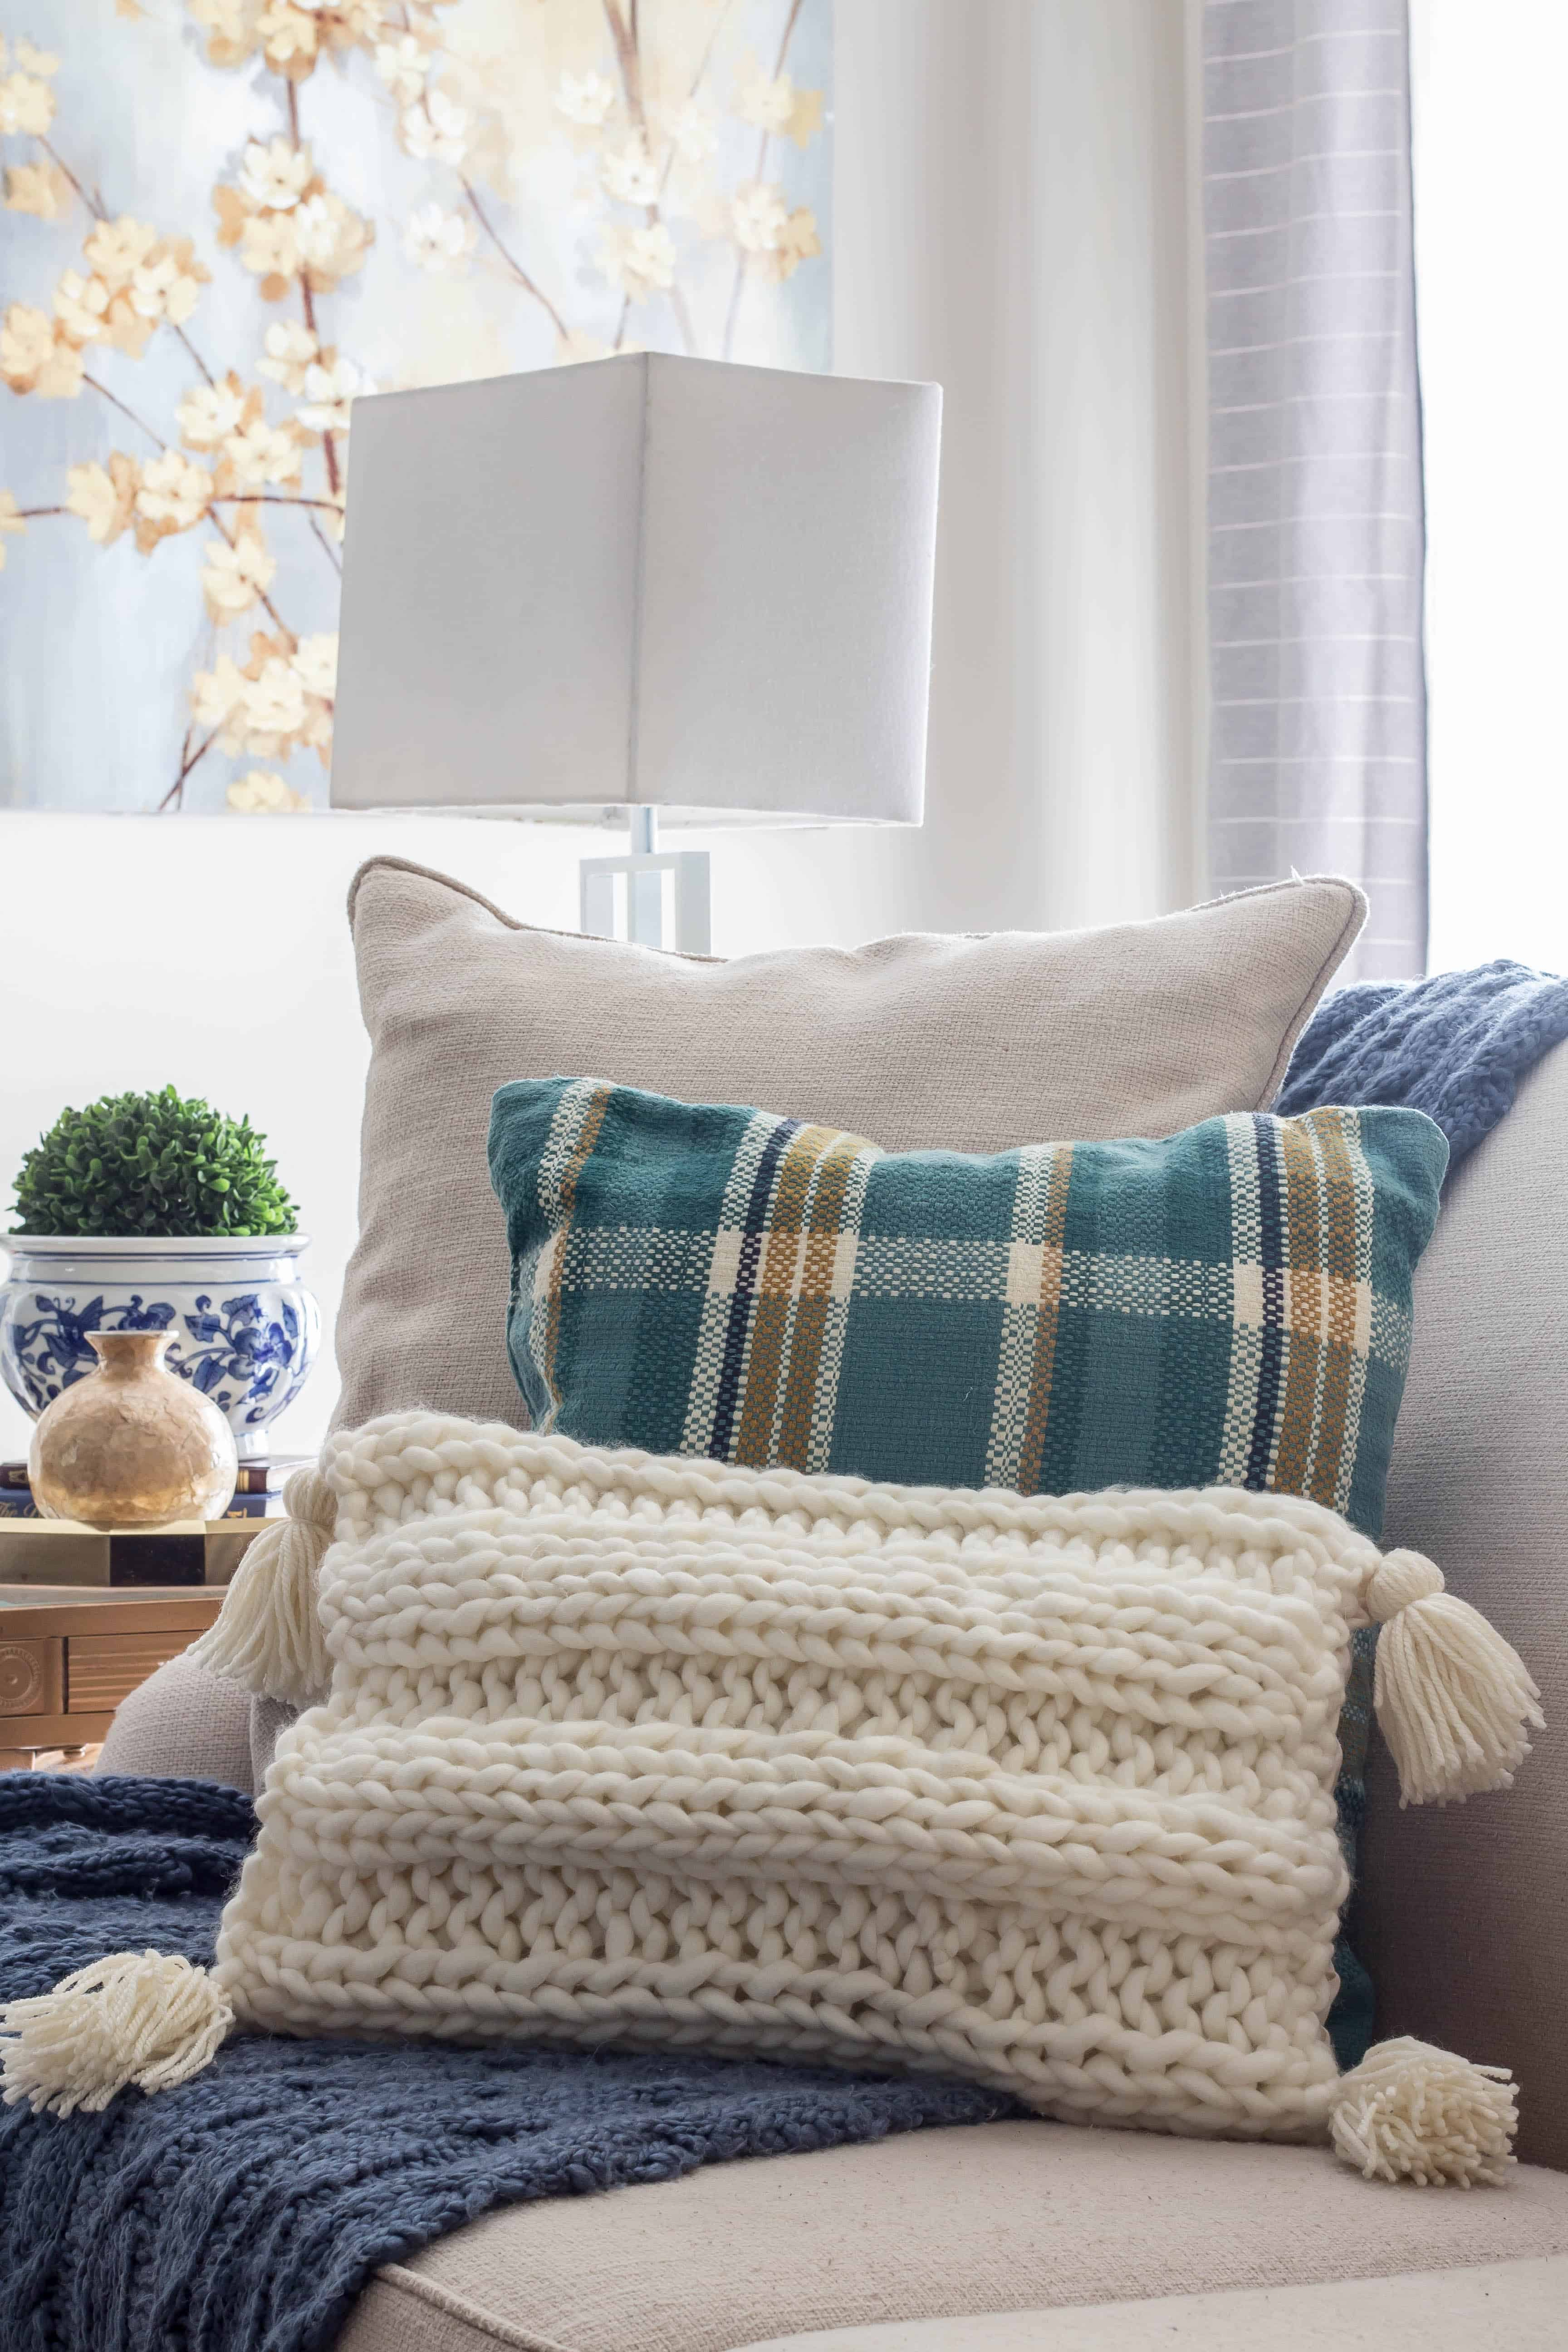 How to make a knitted pillow with tassels pattern that is easy to knit.